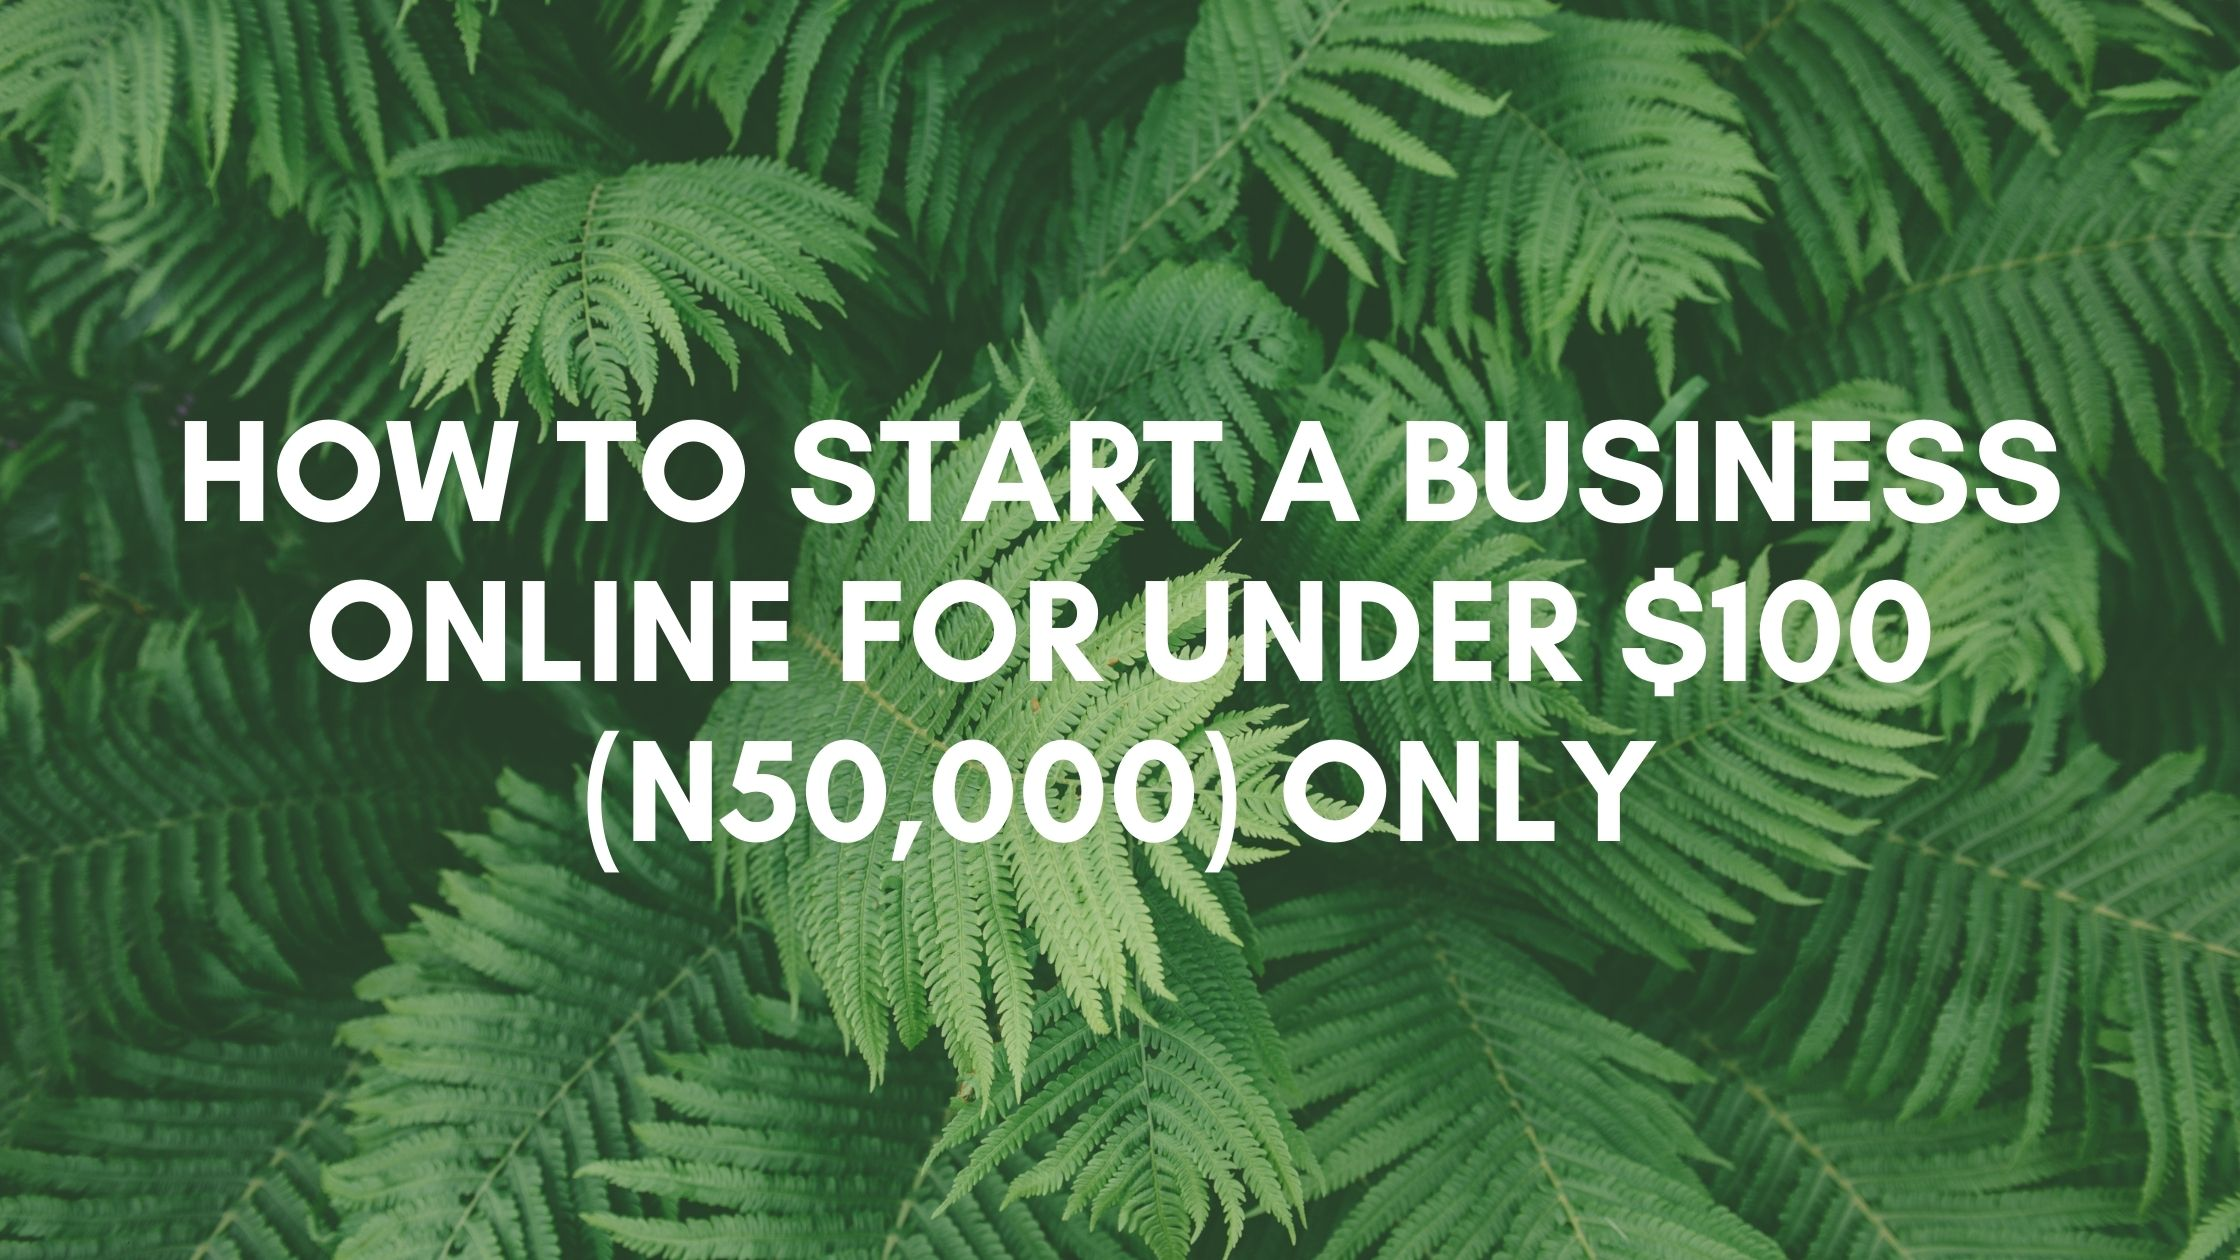 How to start a business online for under $100 (50,000) Only